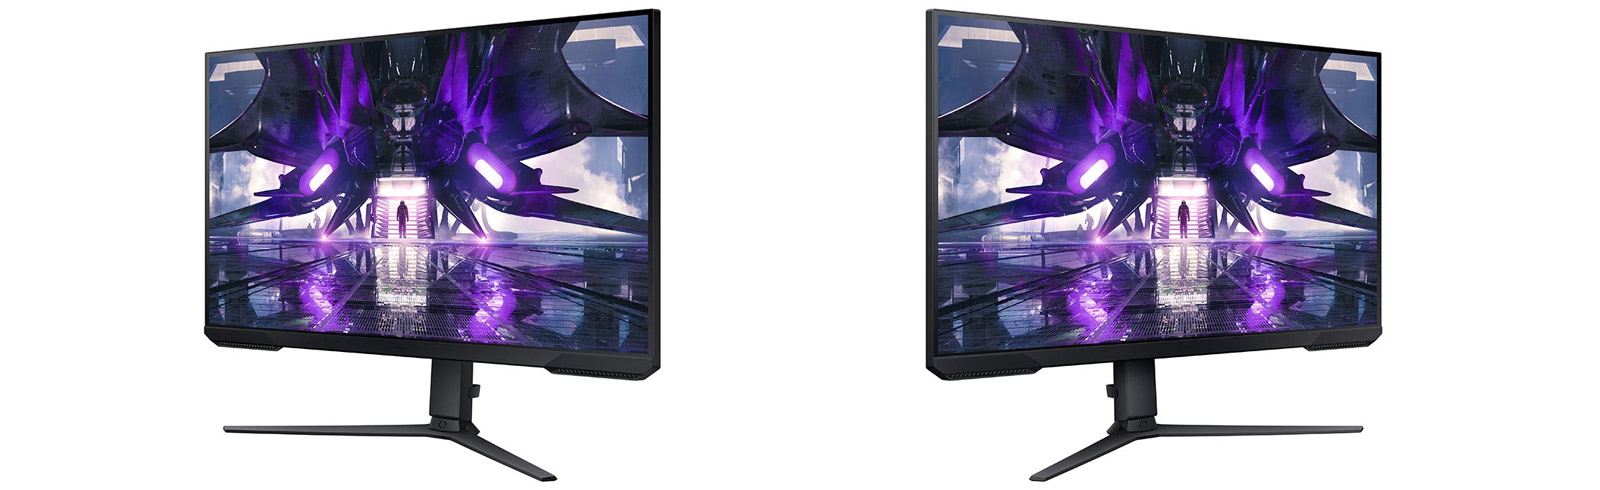 The Samsung Odyssey G3 series of gaming monitors has been expanded with three new models